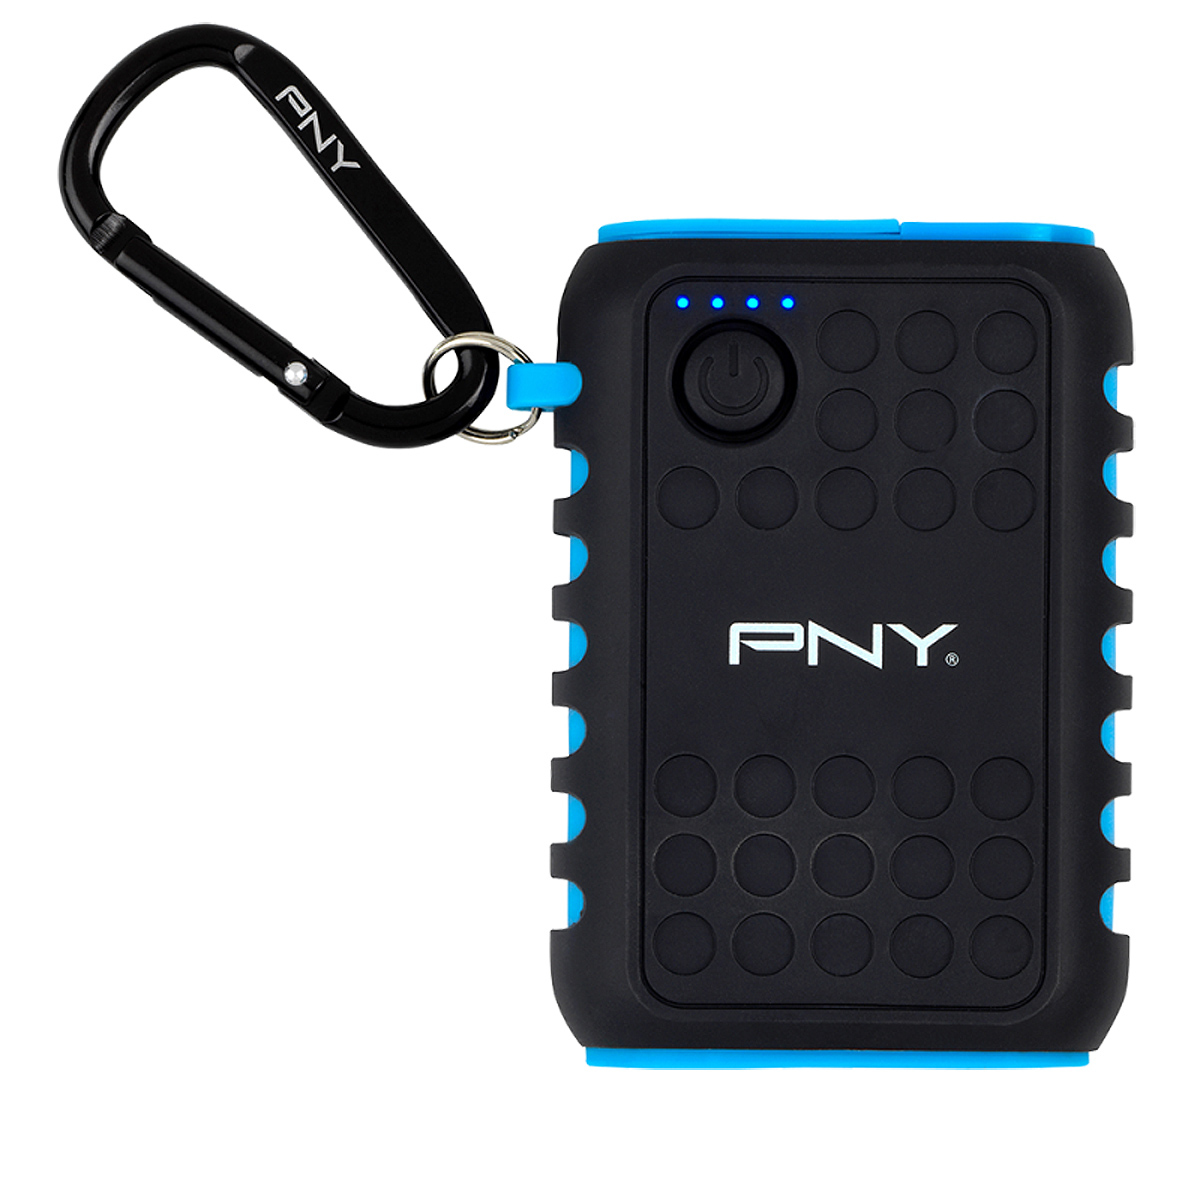 PNY P-B7800-2M4A02KB-RB THE OUTDOOR CHARGER BATTERY